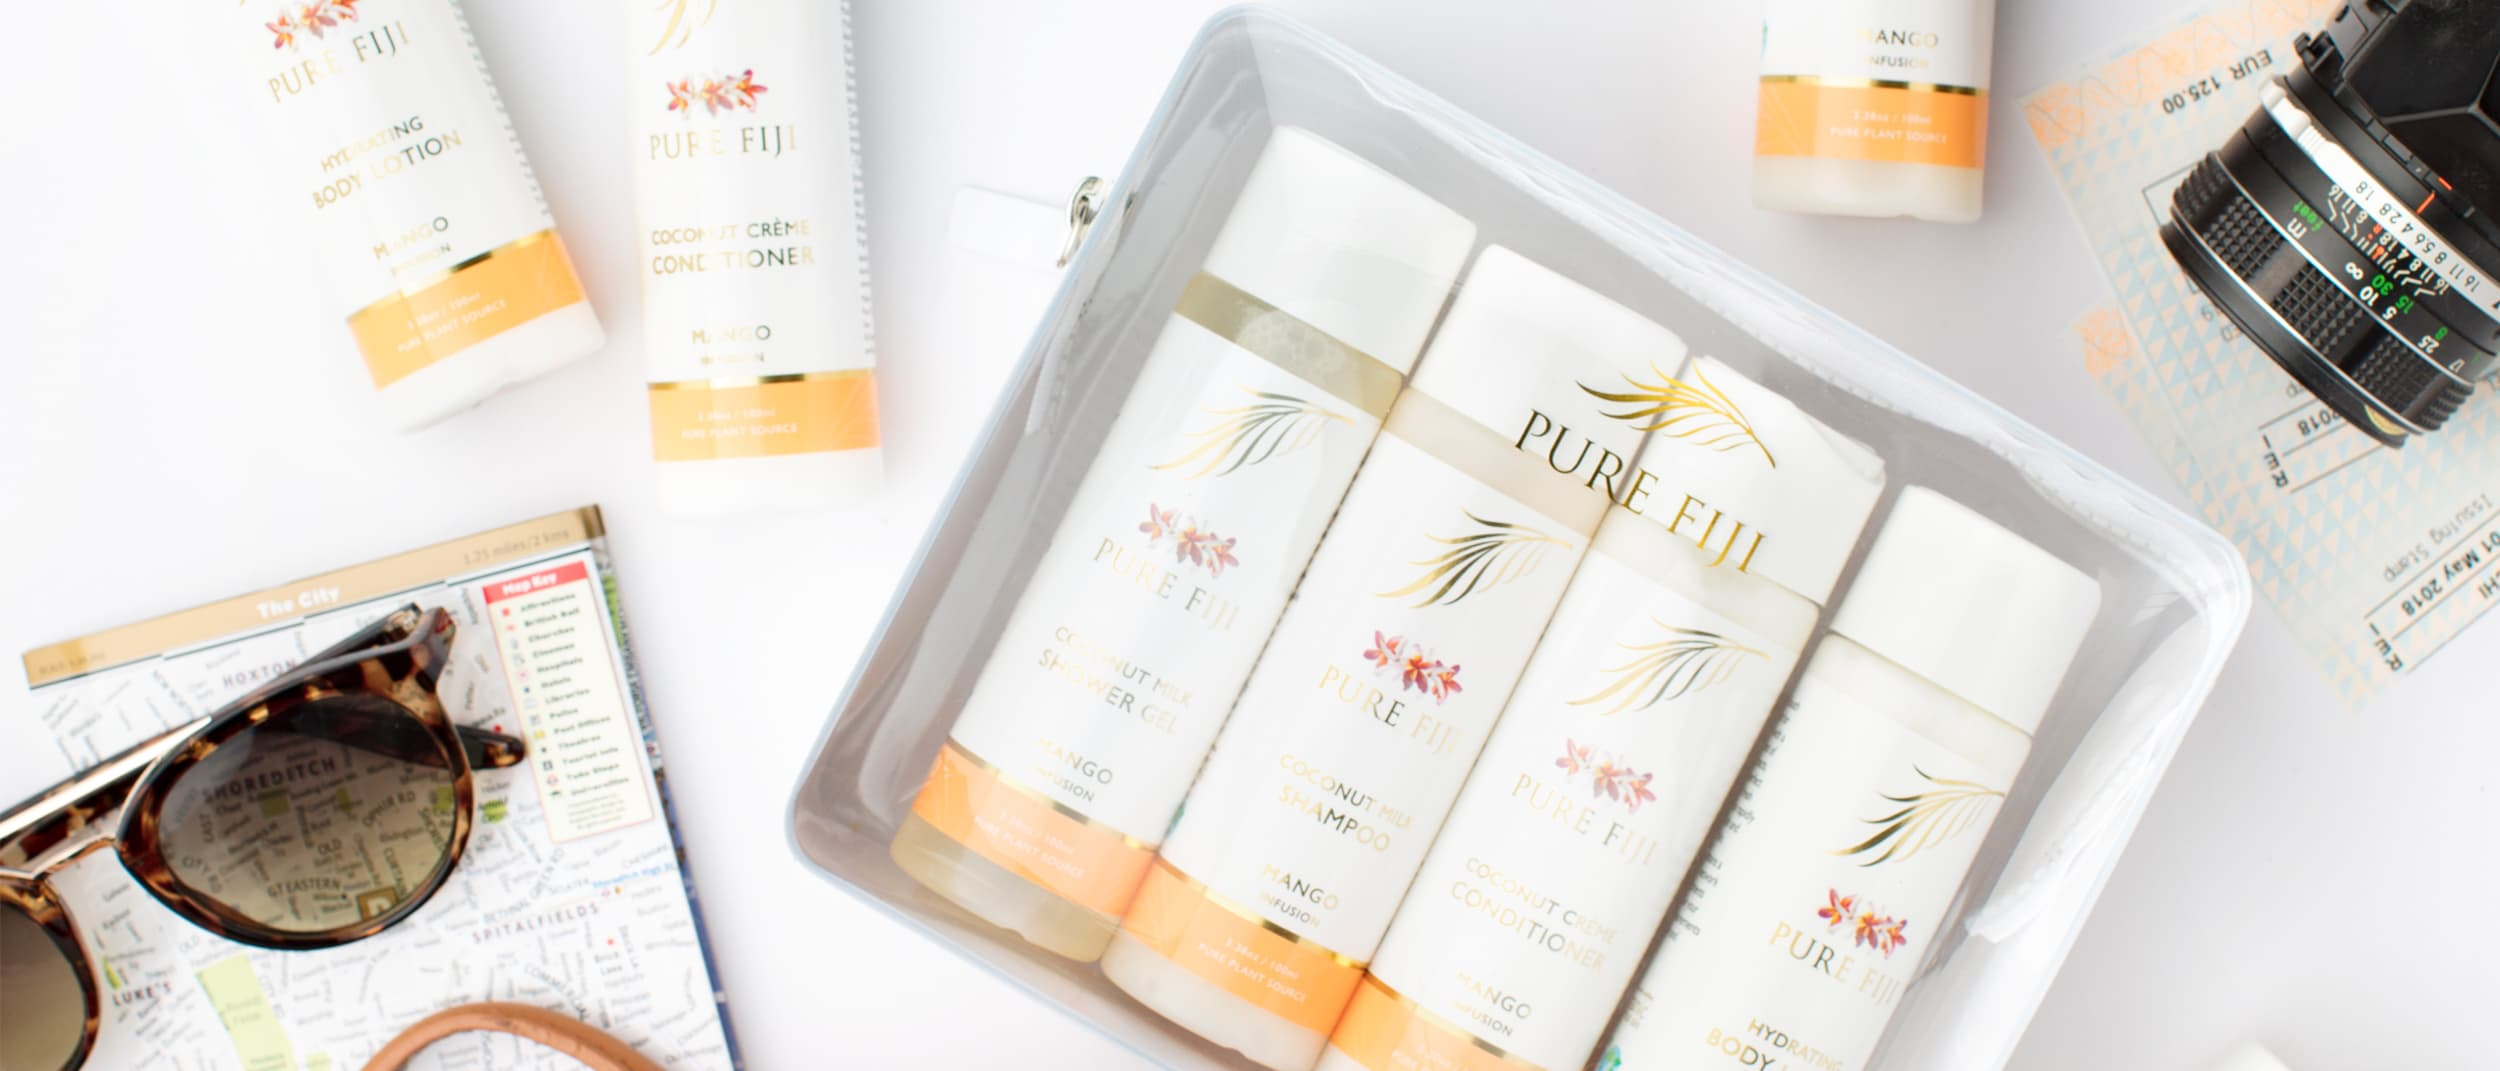 About Face: Pure Fiji Gift with Purchase